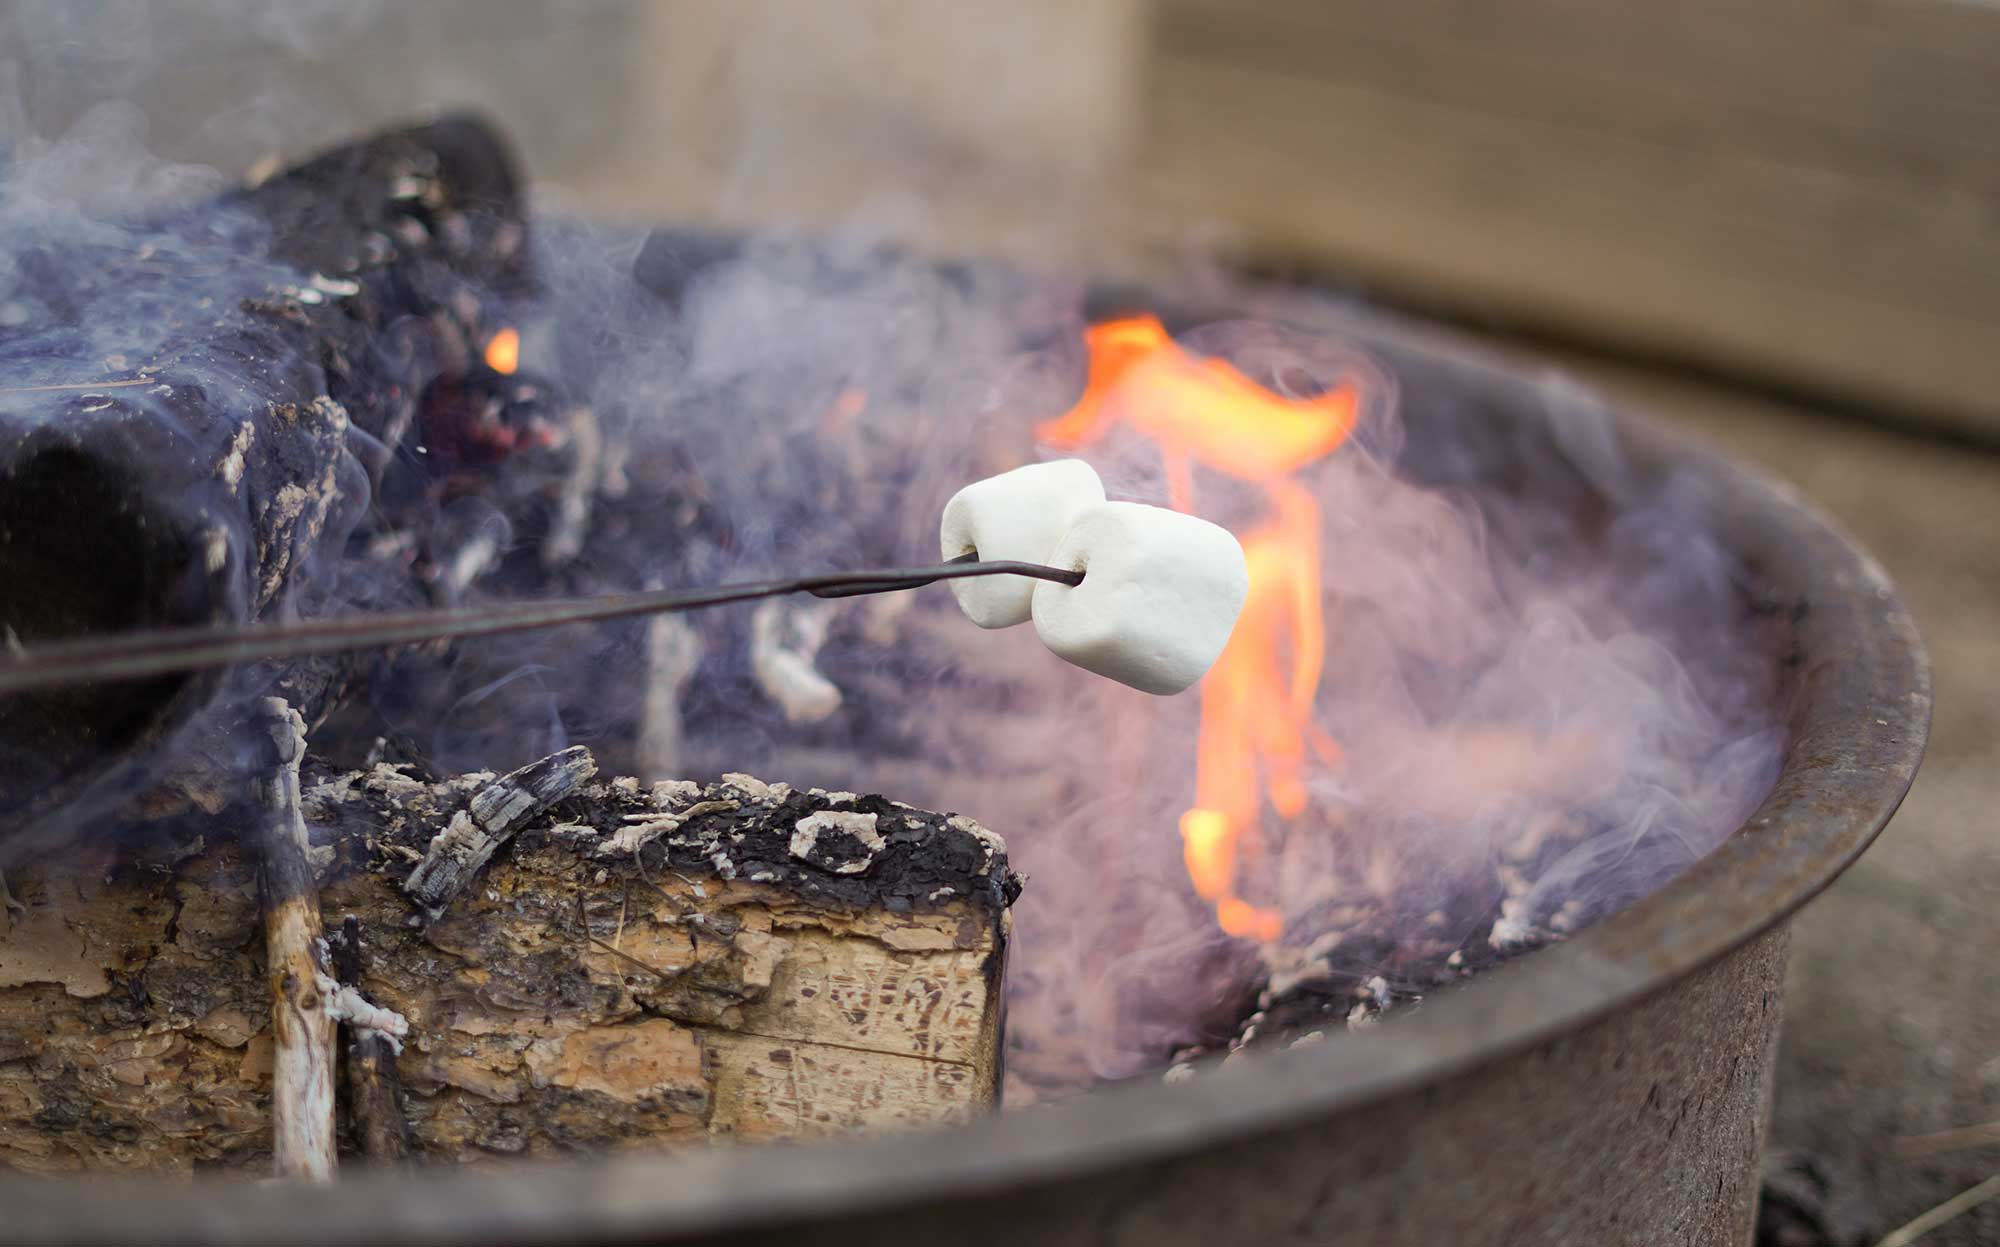 Close up of grilling marshmallows over fire pit